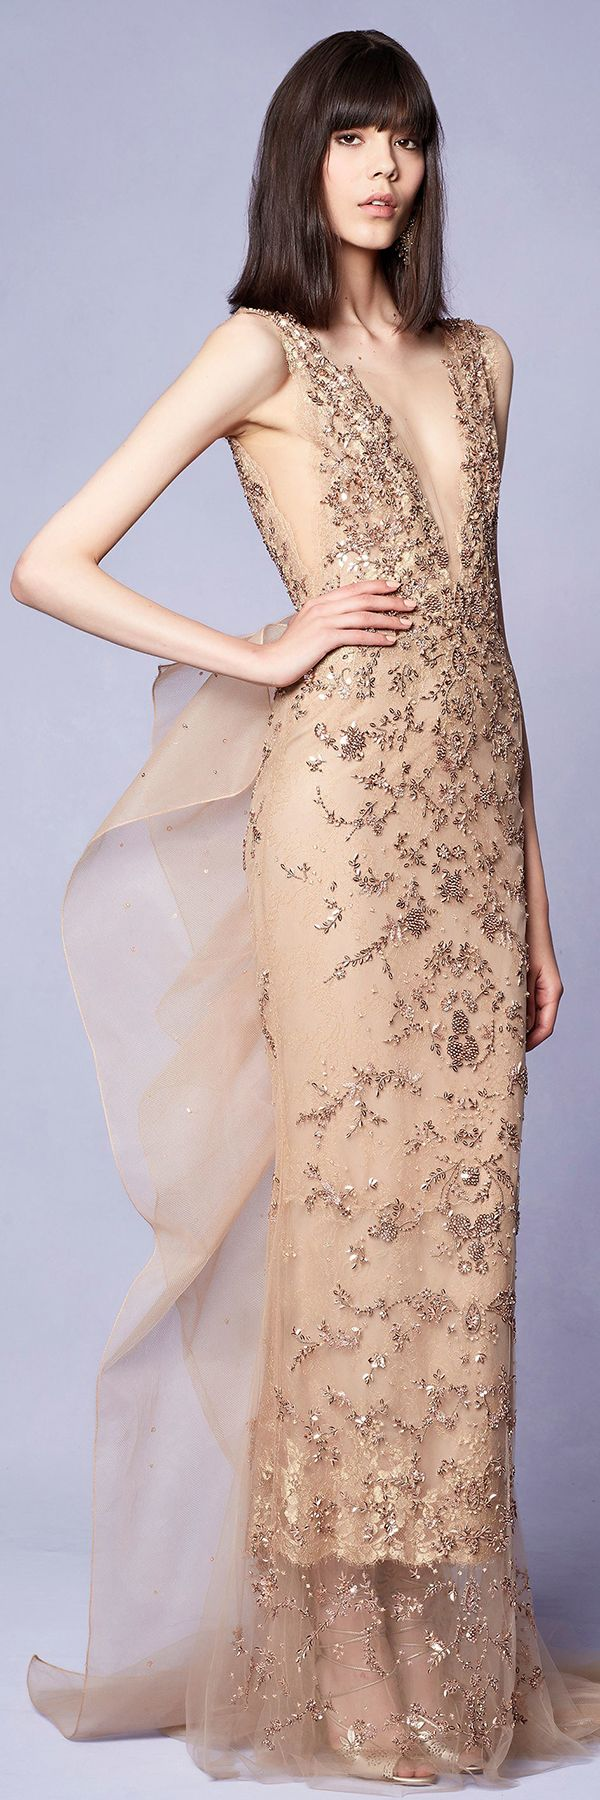 3055 best Formal Events images on Pinterest | High fashion, Couture ...